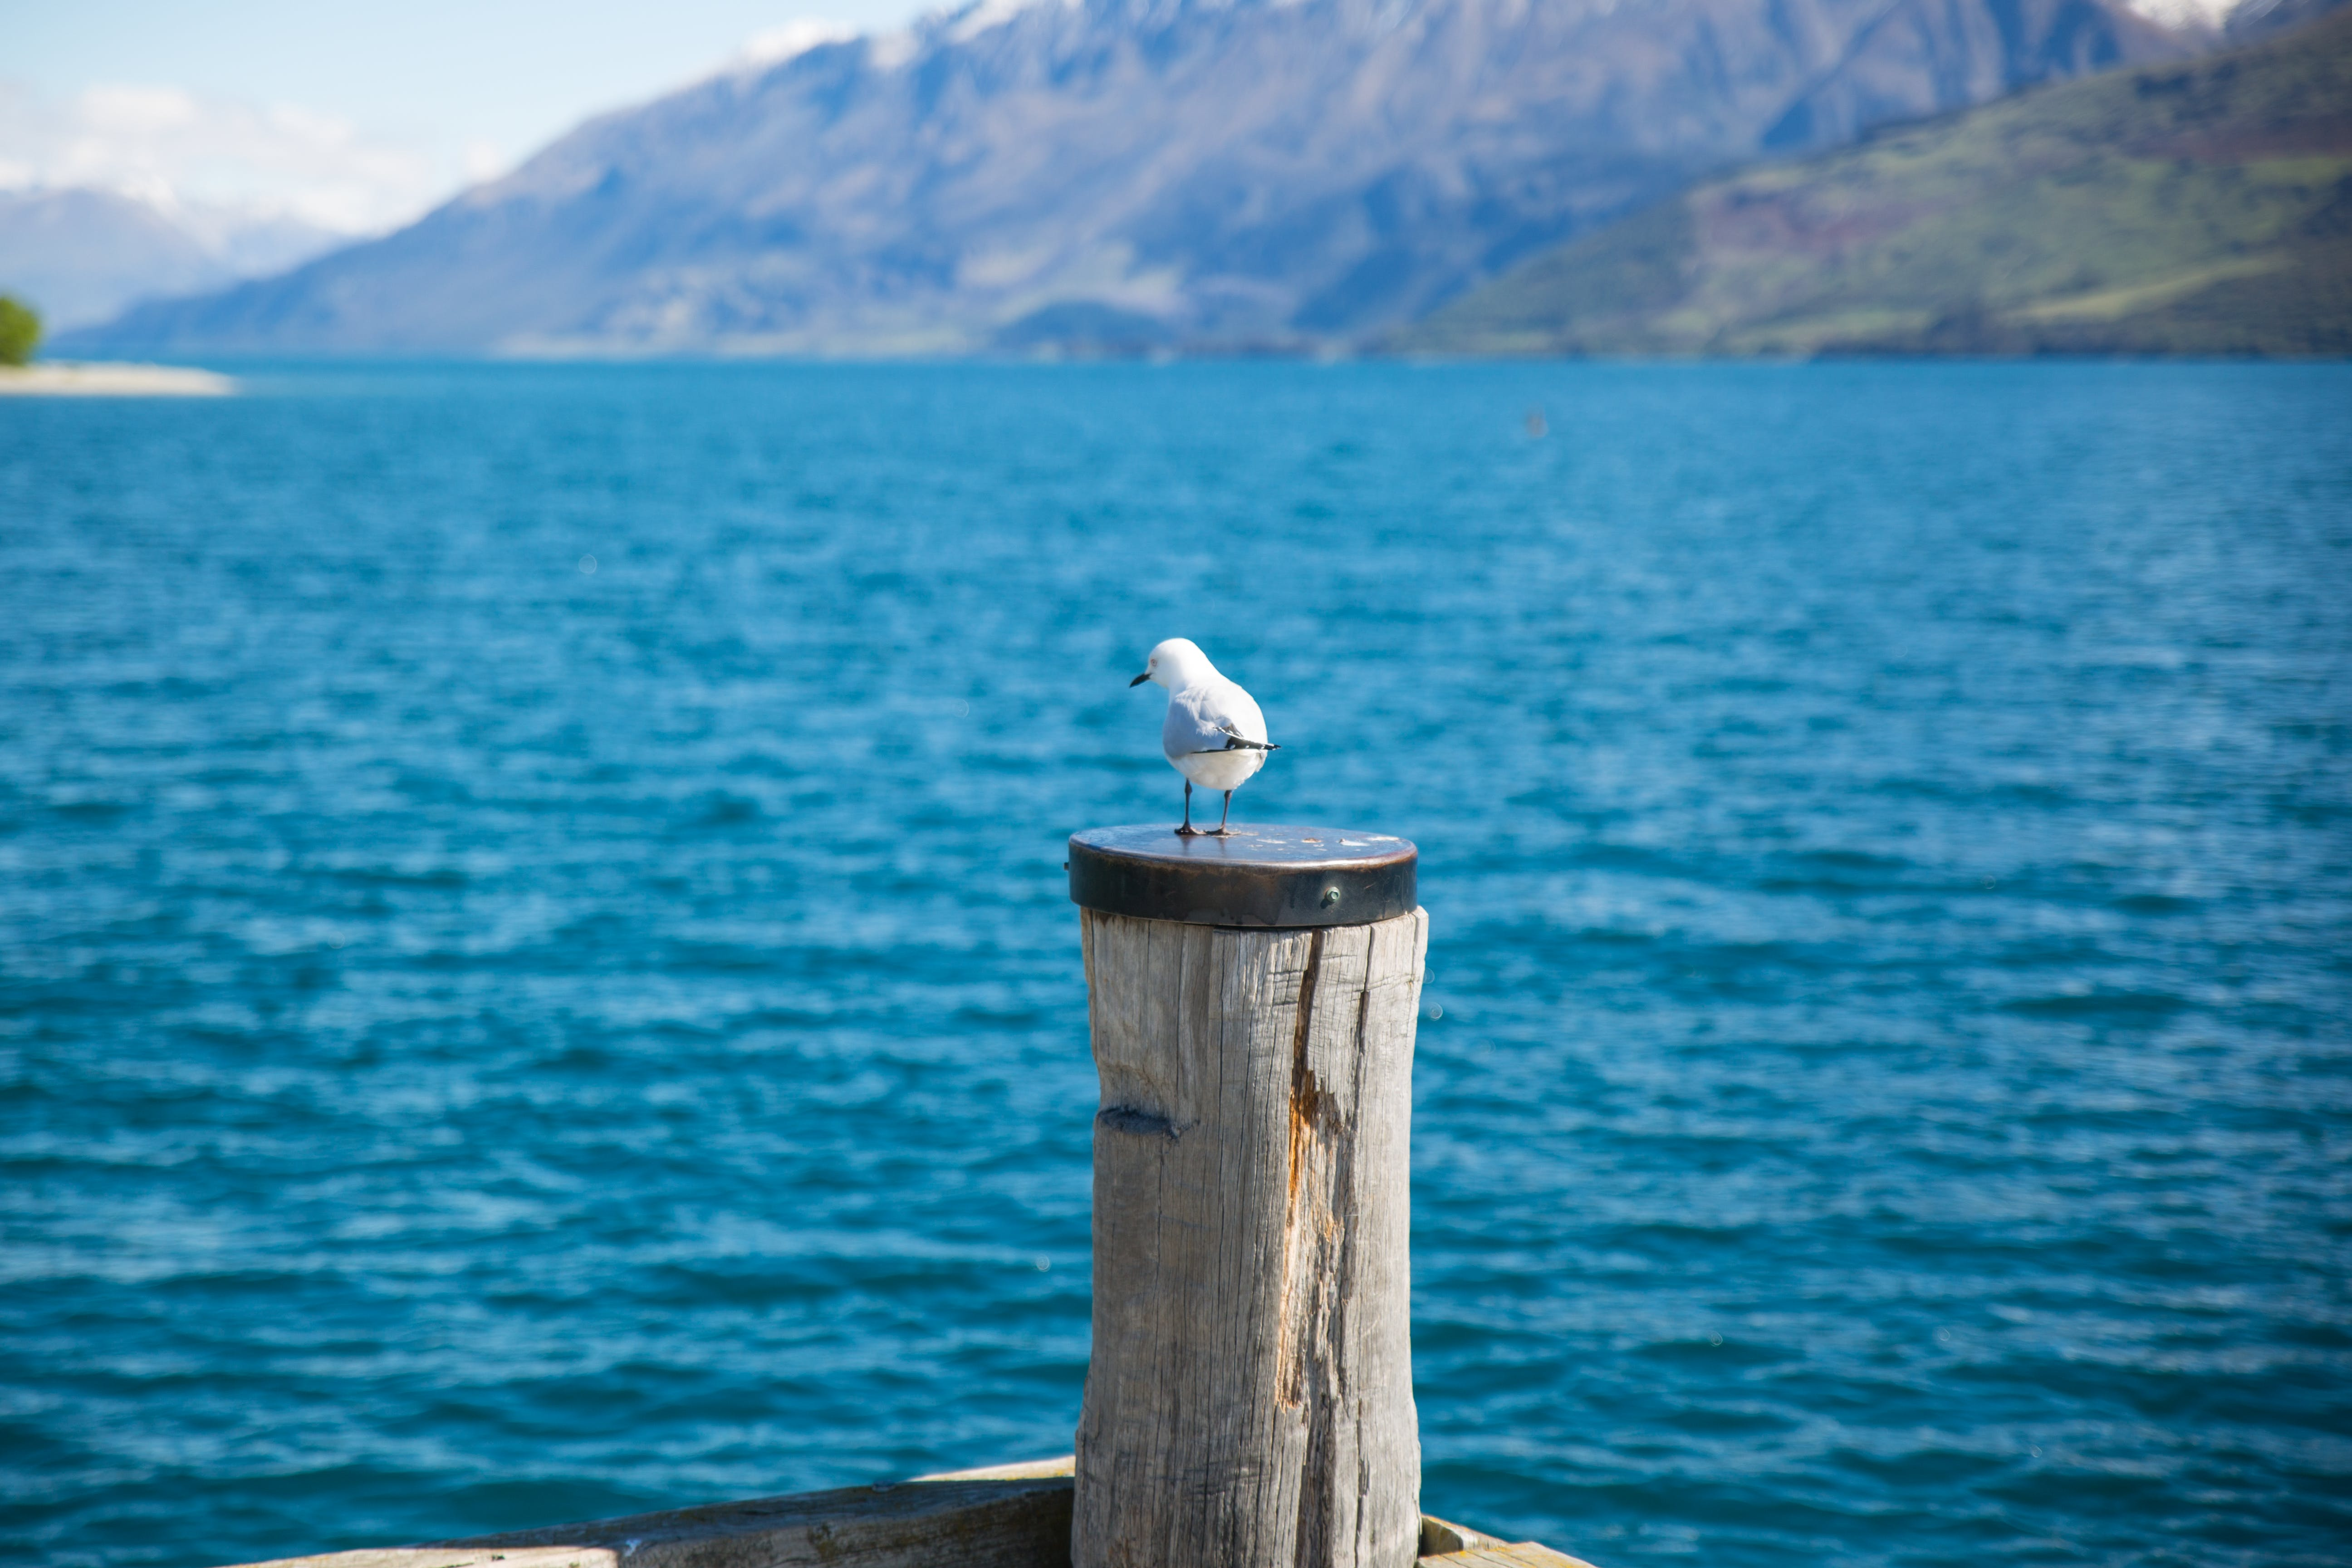 Depth of Field Photography of White Gull on Top of Brown Wooden Pole in Front of Body of Water